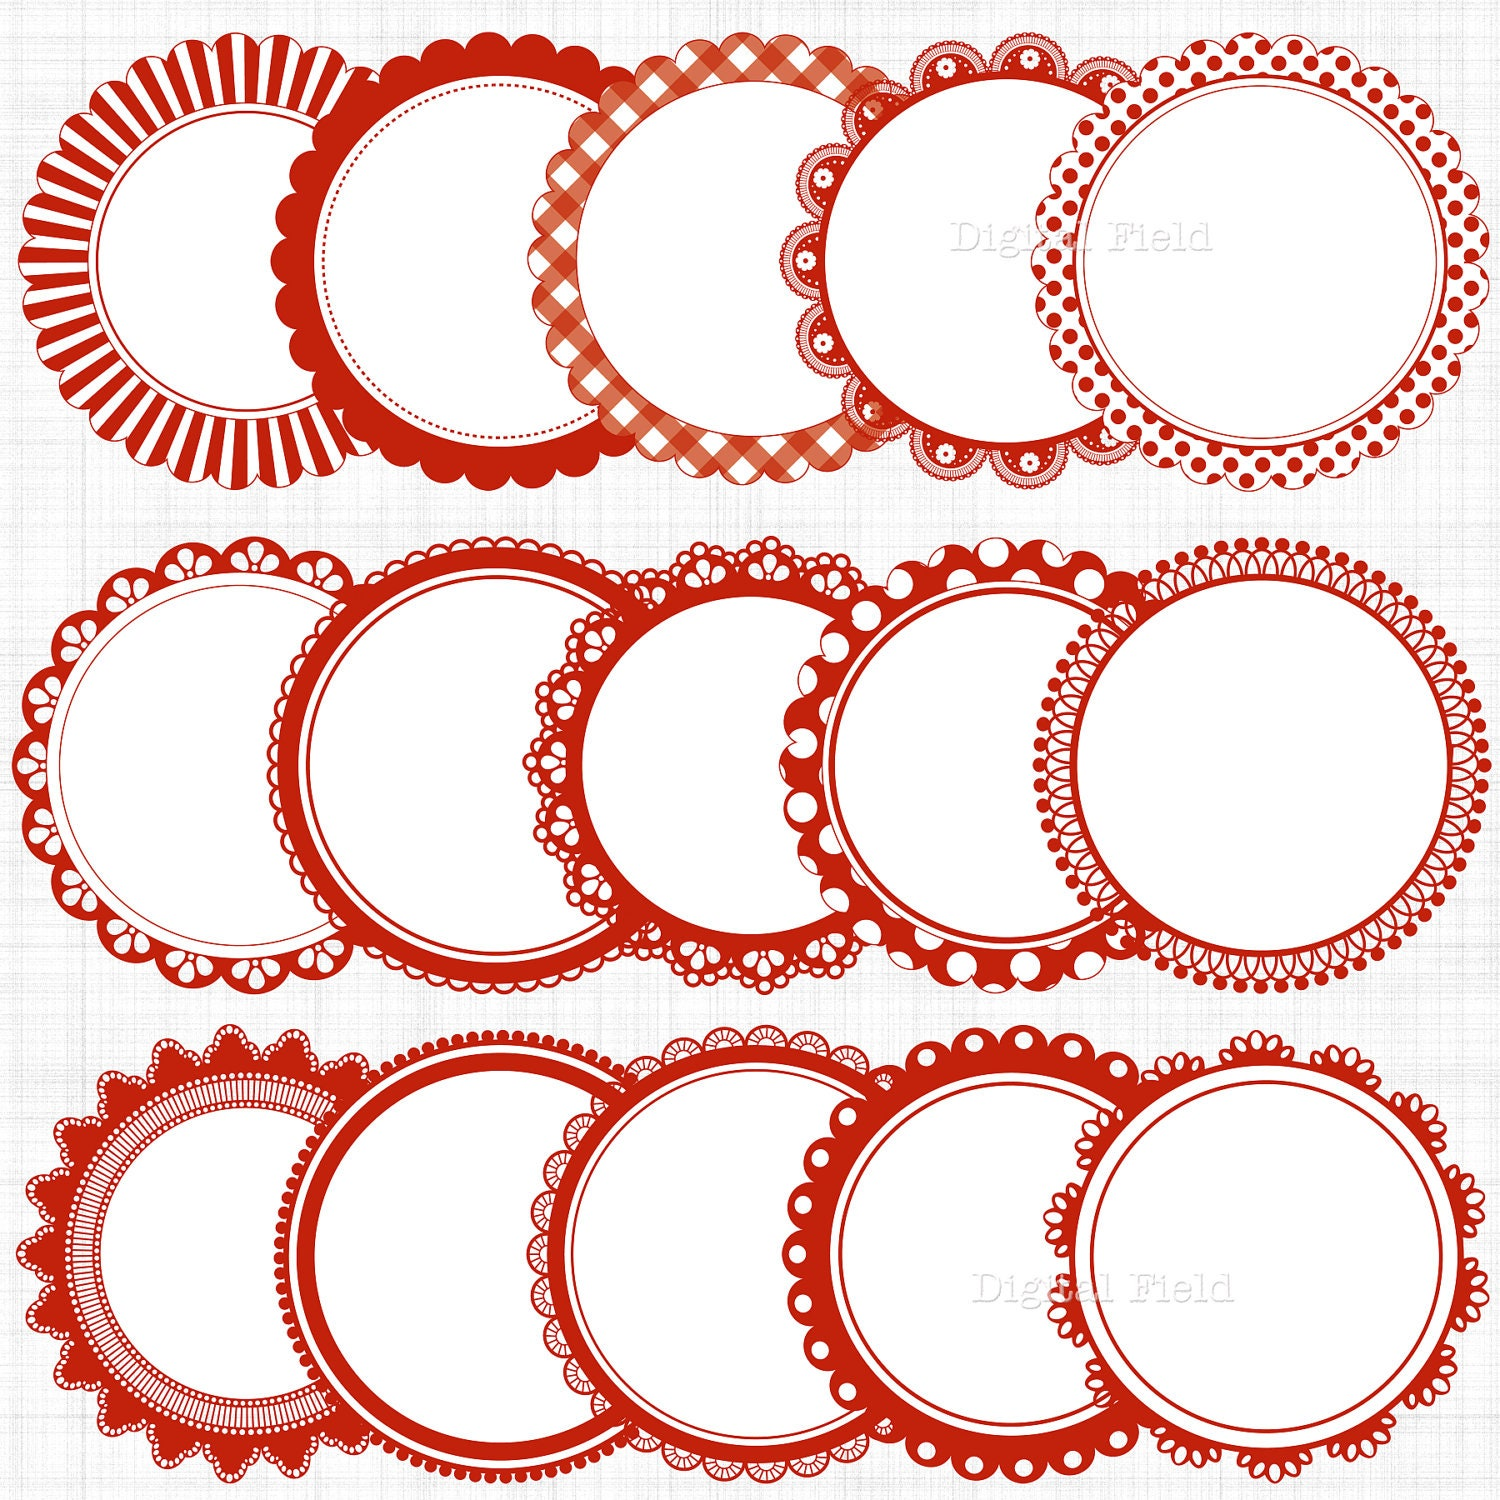 red white scalloped circle frames labels clip art set by digitalfield etsy. Black Bedroom Furniture Sets. Home Design Ideas